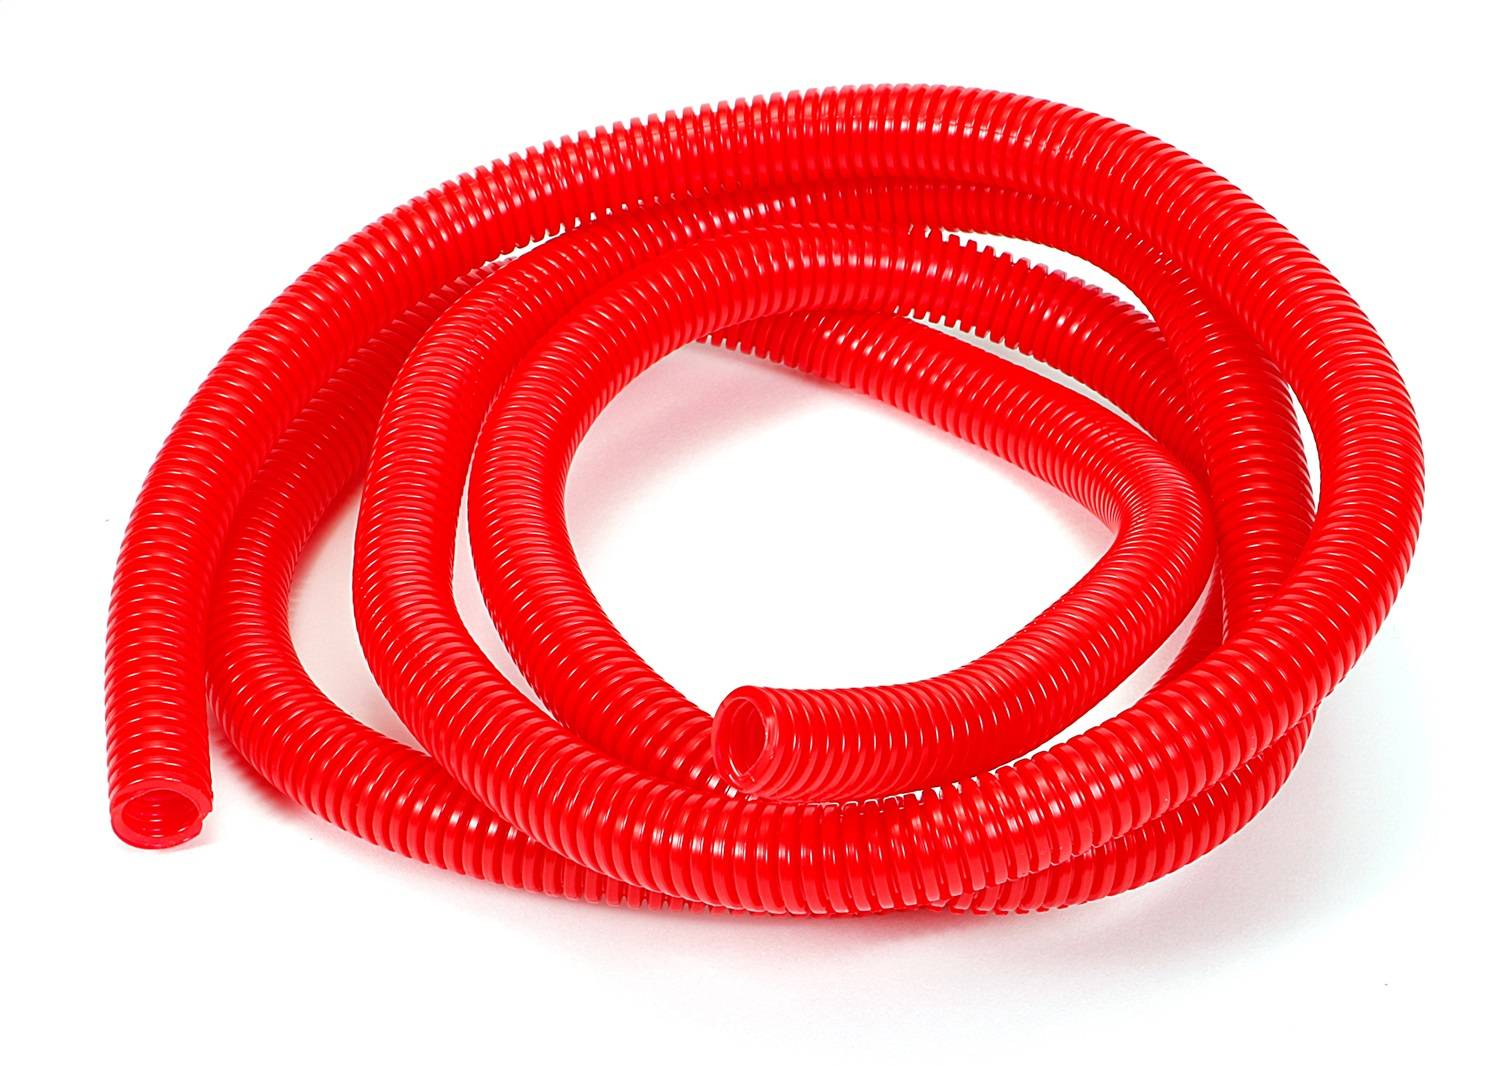 F148748452 wire harness tubing convoluted trans dapt performance products wire harness tubing at creativeand.co